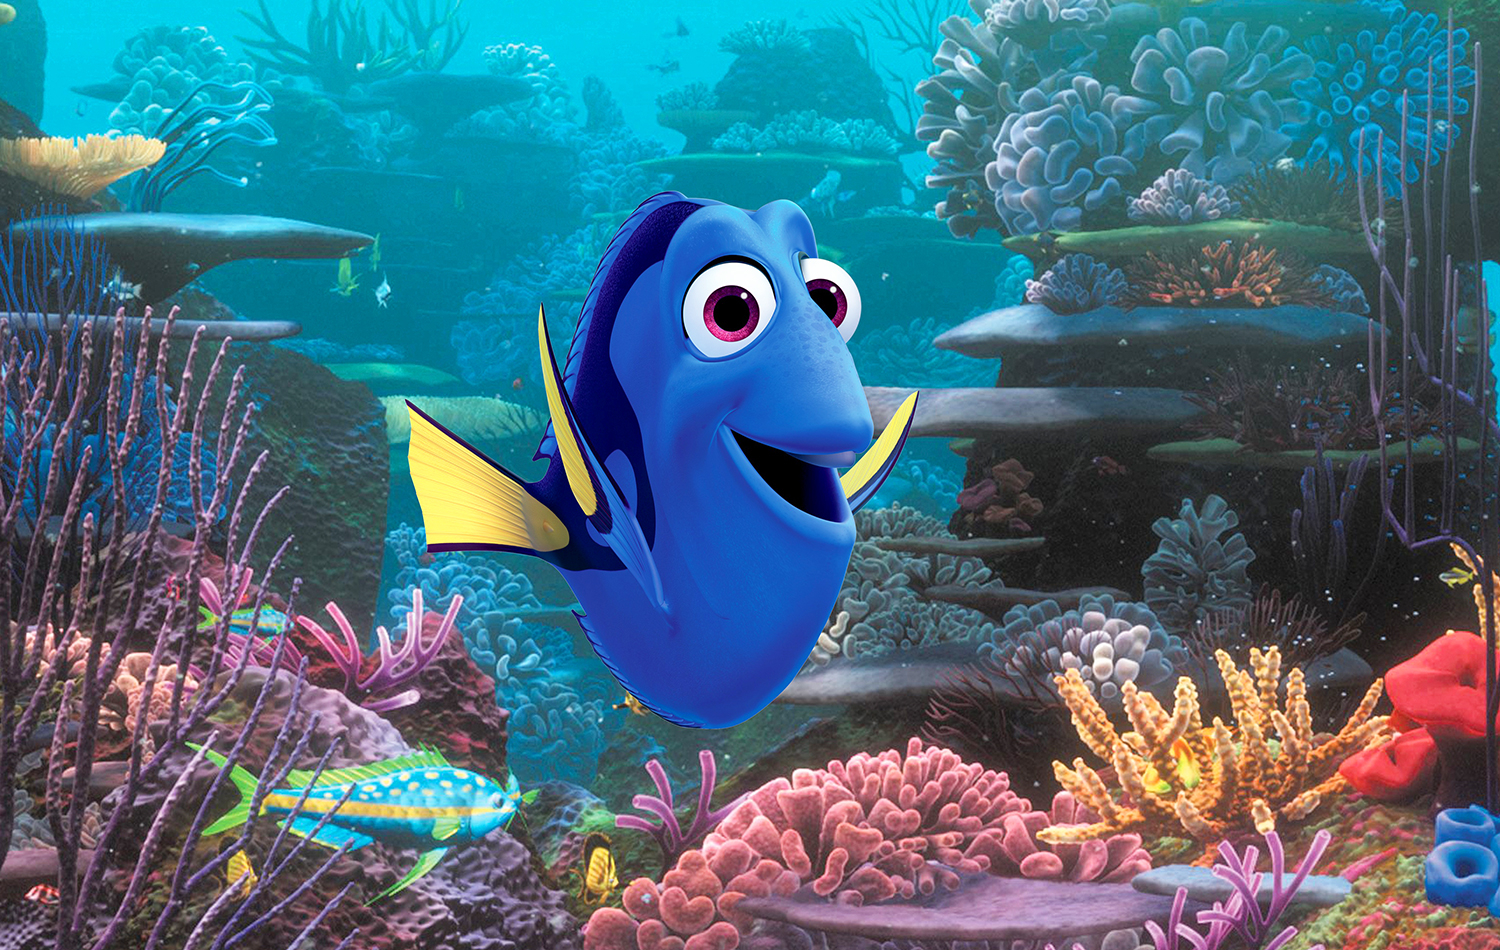 'Finding Dory' Trailer Hints at Disney-Pixar's First Lesbian Couple